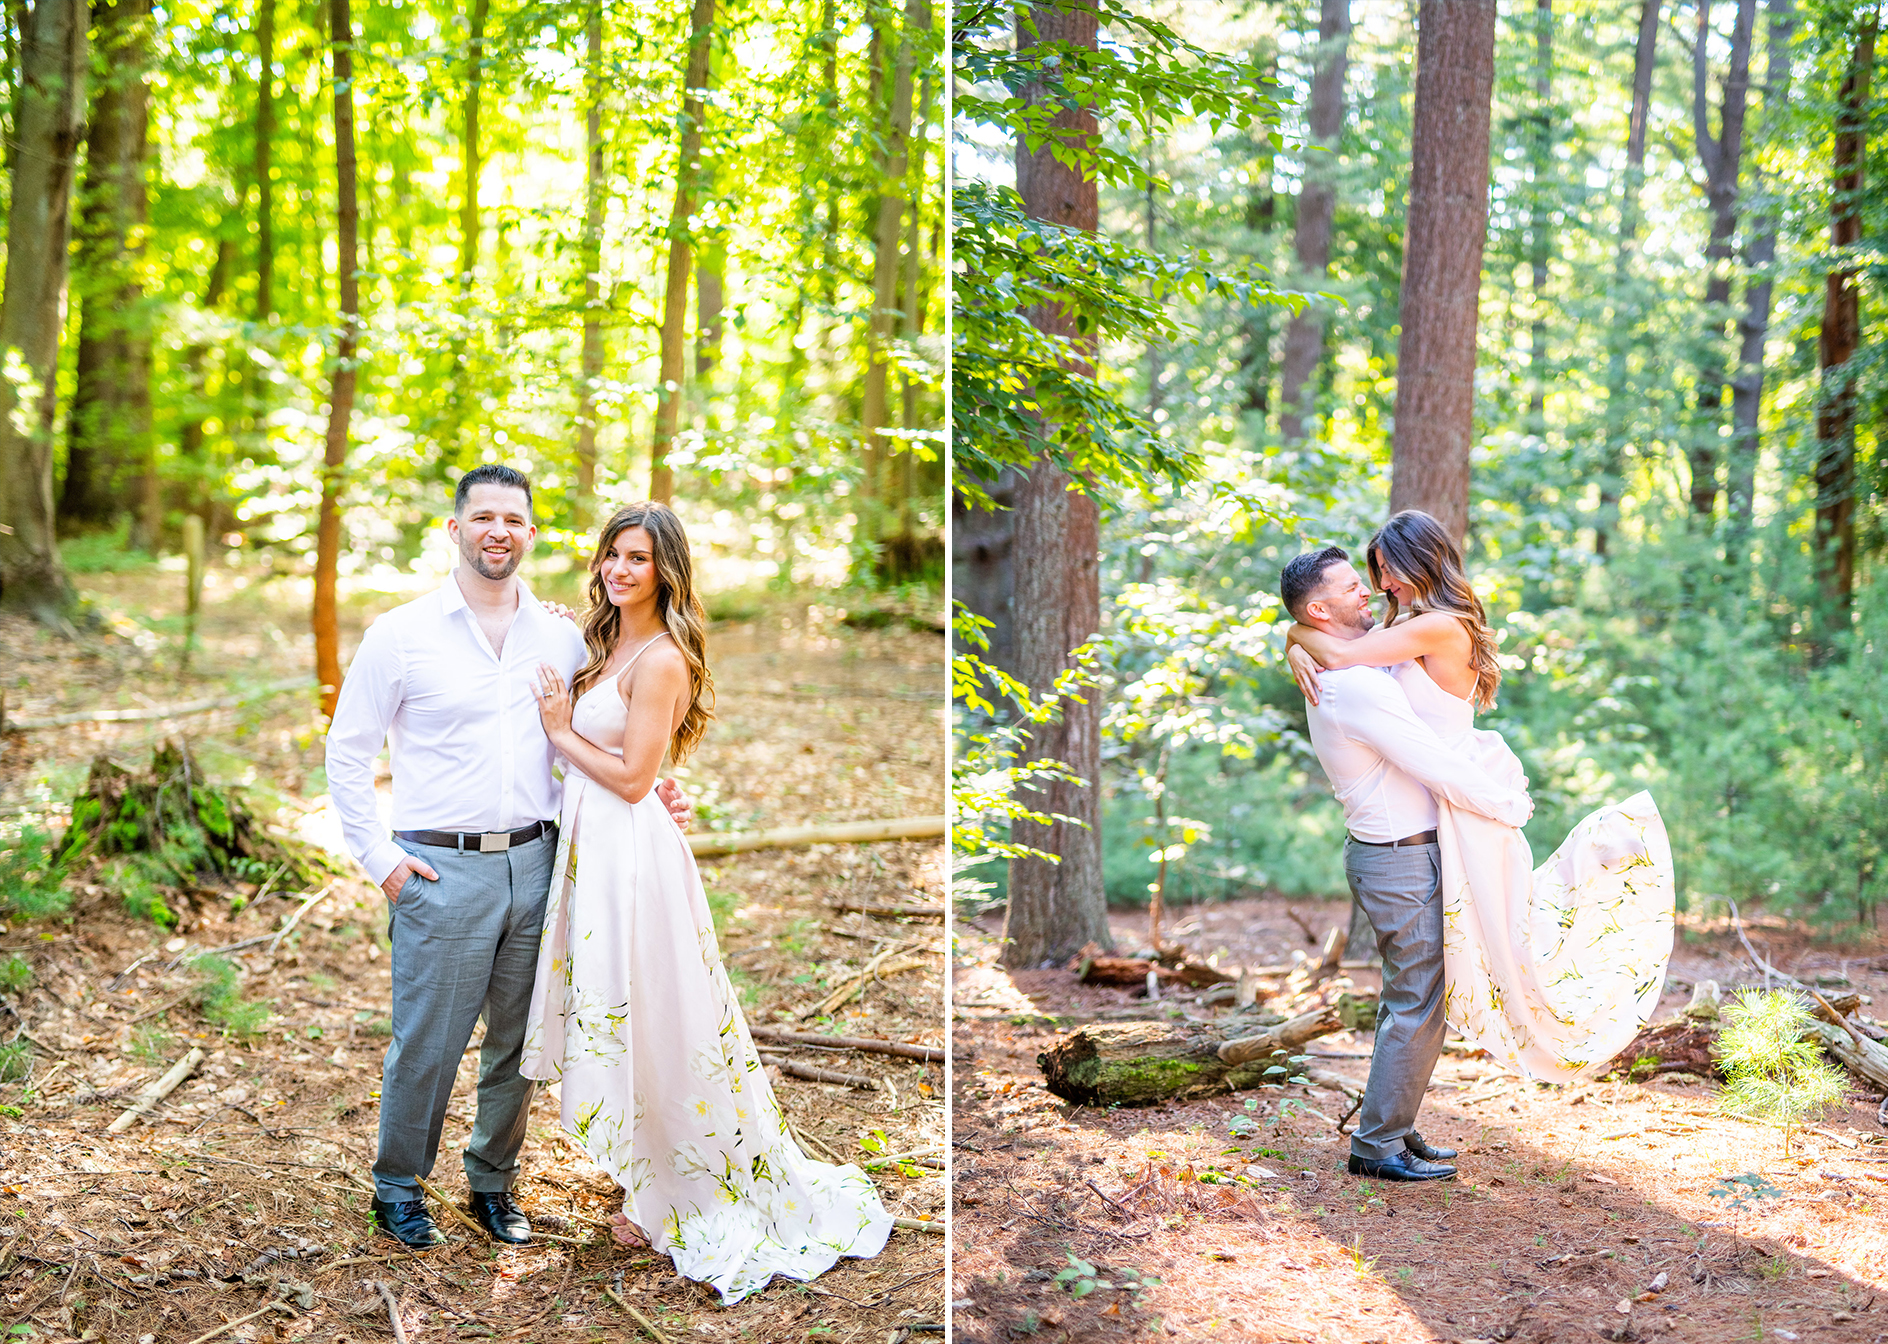 Prosser Pines Engagement Shoot | Long Island Wedding Photographer | Hamptons Wedding Photographer8